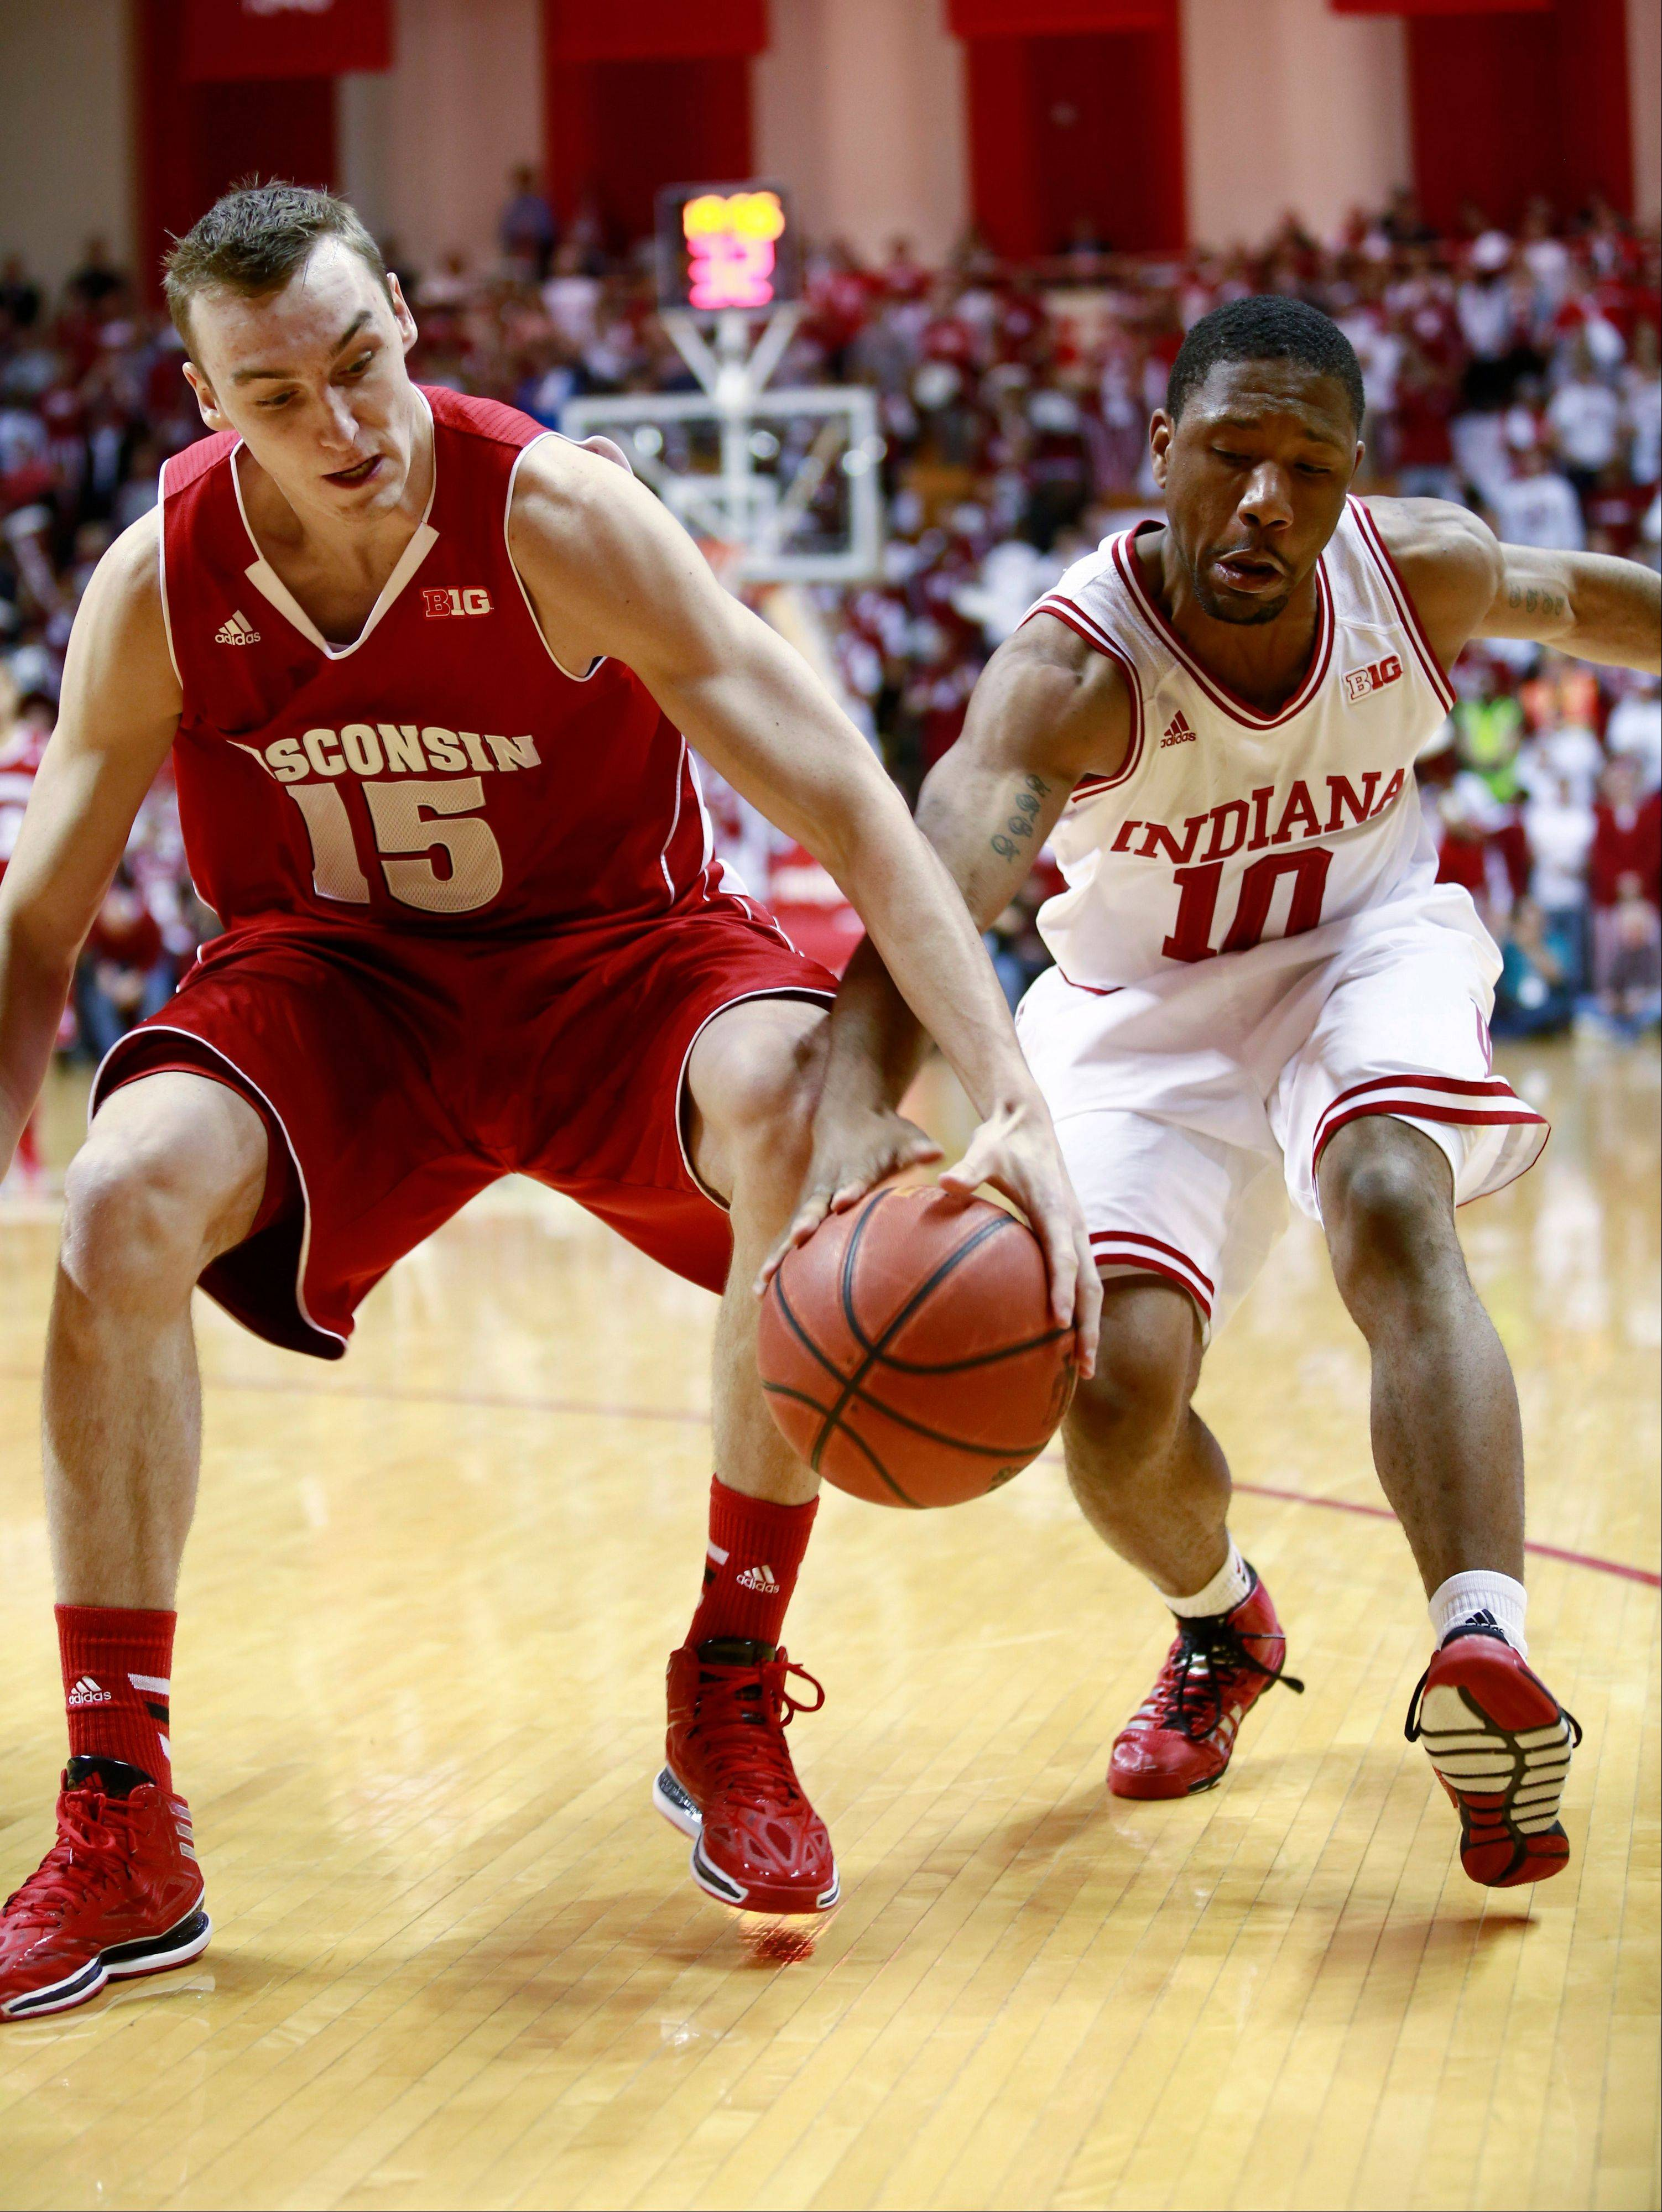 Wisconsin forward Sam Dekker (15) and Indiana guard Evan Gordon (10) fight for control of the basketball in the first half of an NCAA basketball game in Bloomington, Ind. Tuesday, Jan. 14, 2014. (AP Photo/R Brent Smith)